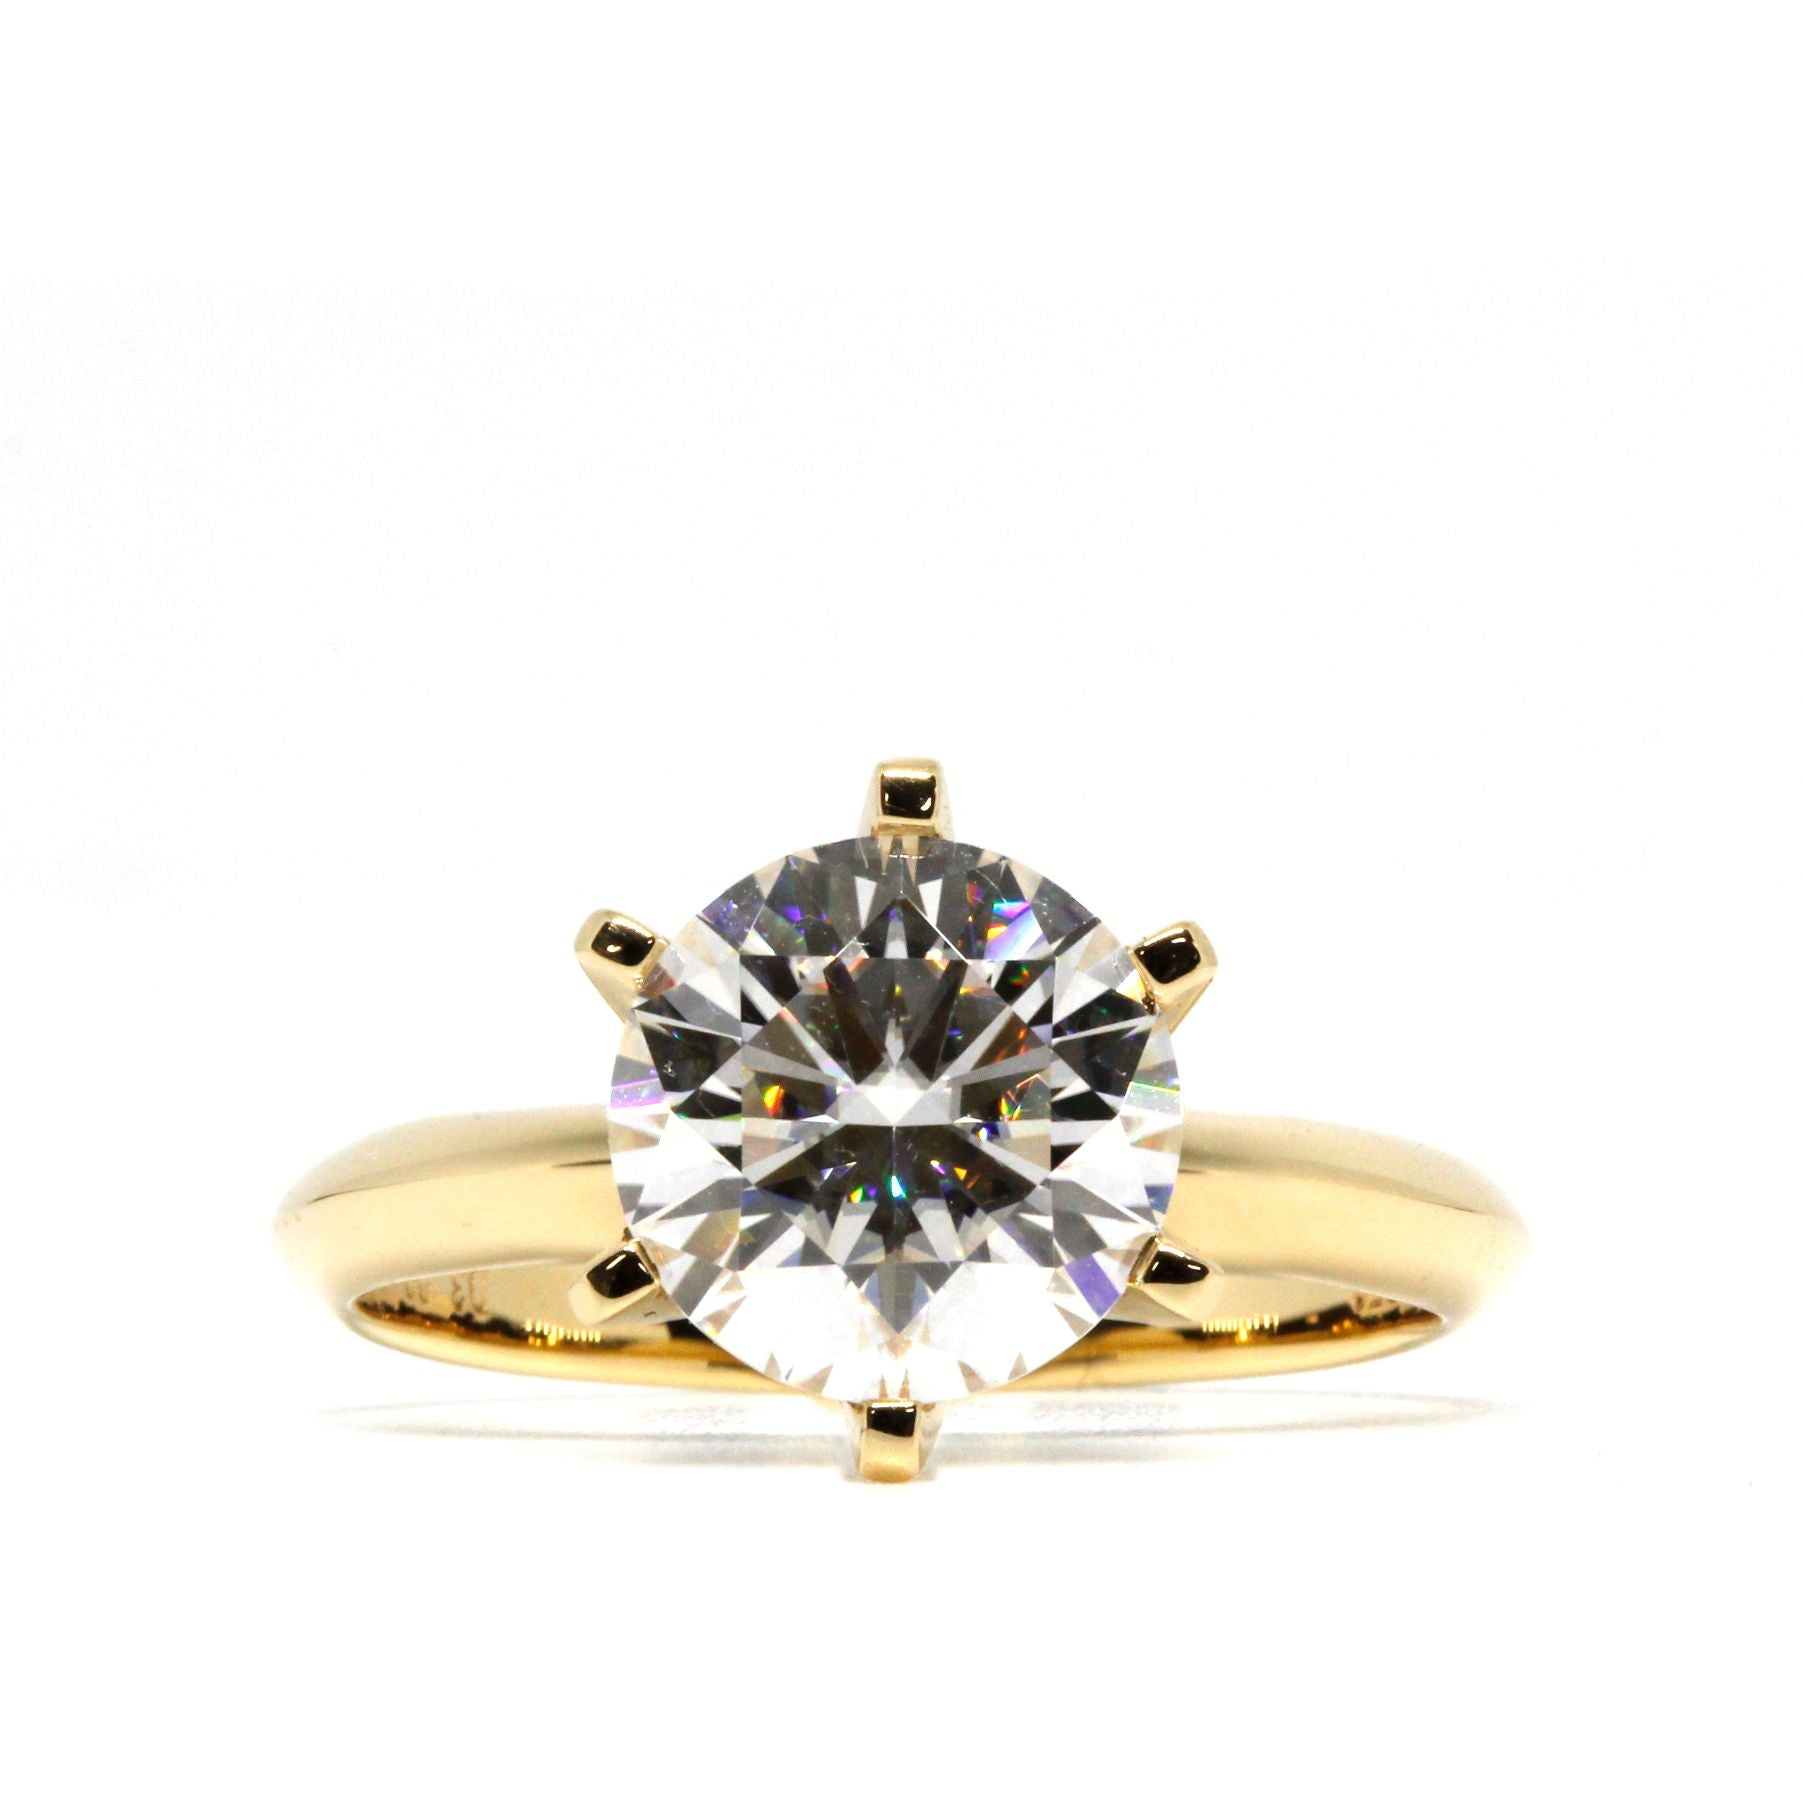 Round Moissanite Classic Solitaire 6 Prongs 18K Yellow Gold Band - Lecaine Gems Moissanite